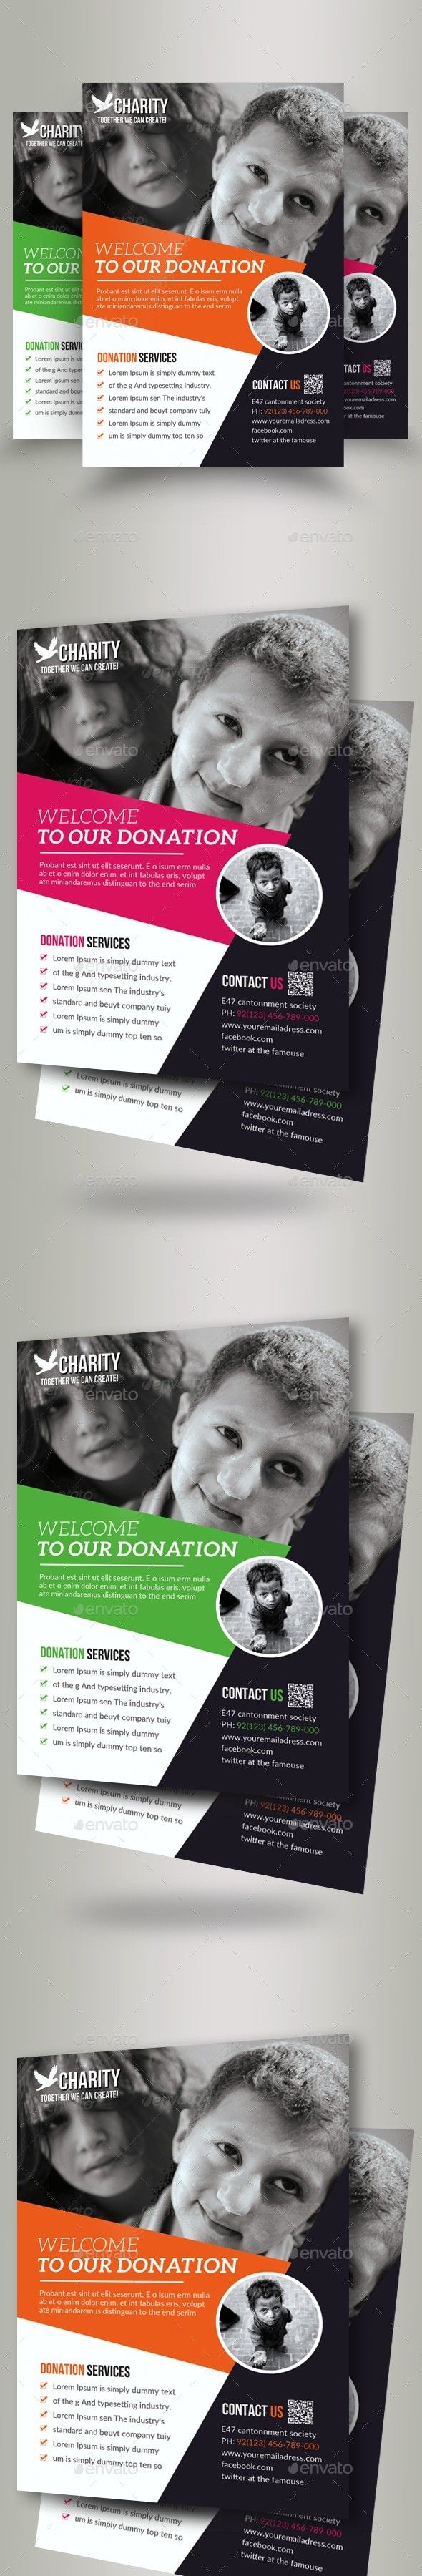 Charity Donation Flyer Templates Flyers Layout Pinterest